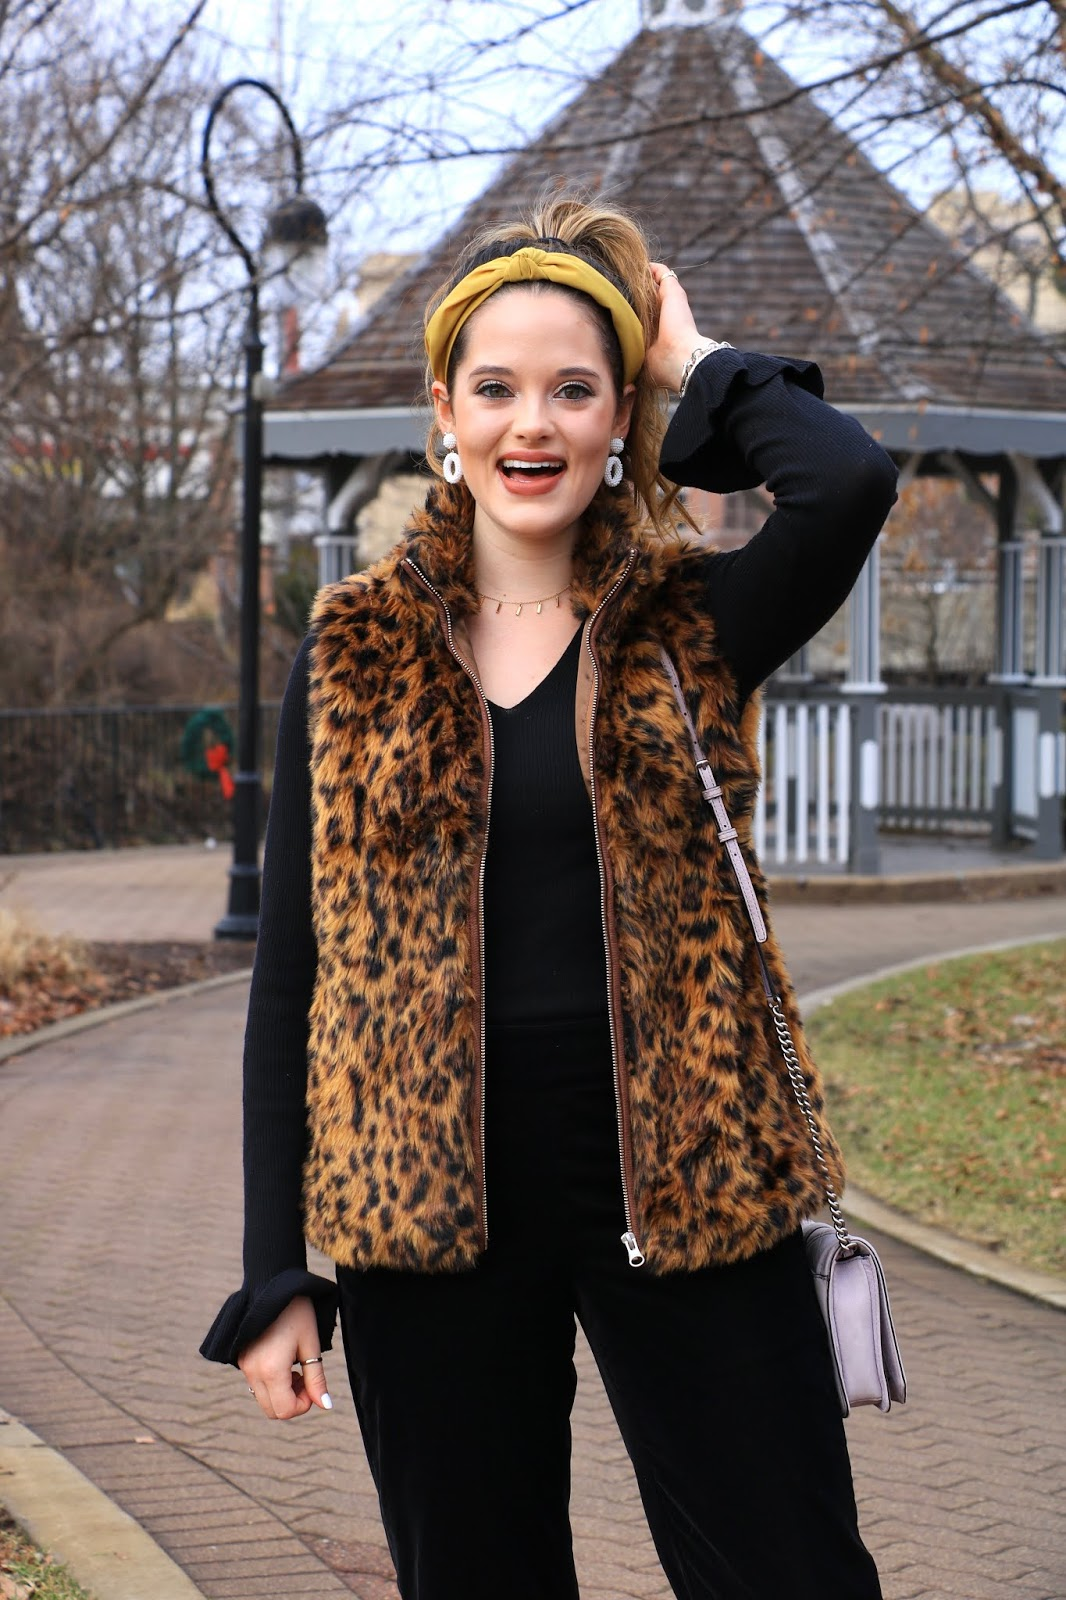 Nyc fashion blogger Kathleen Harper's headband outfit